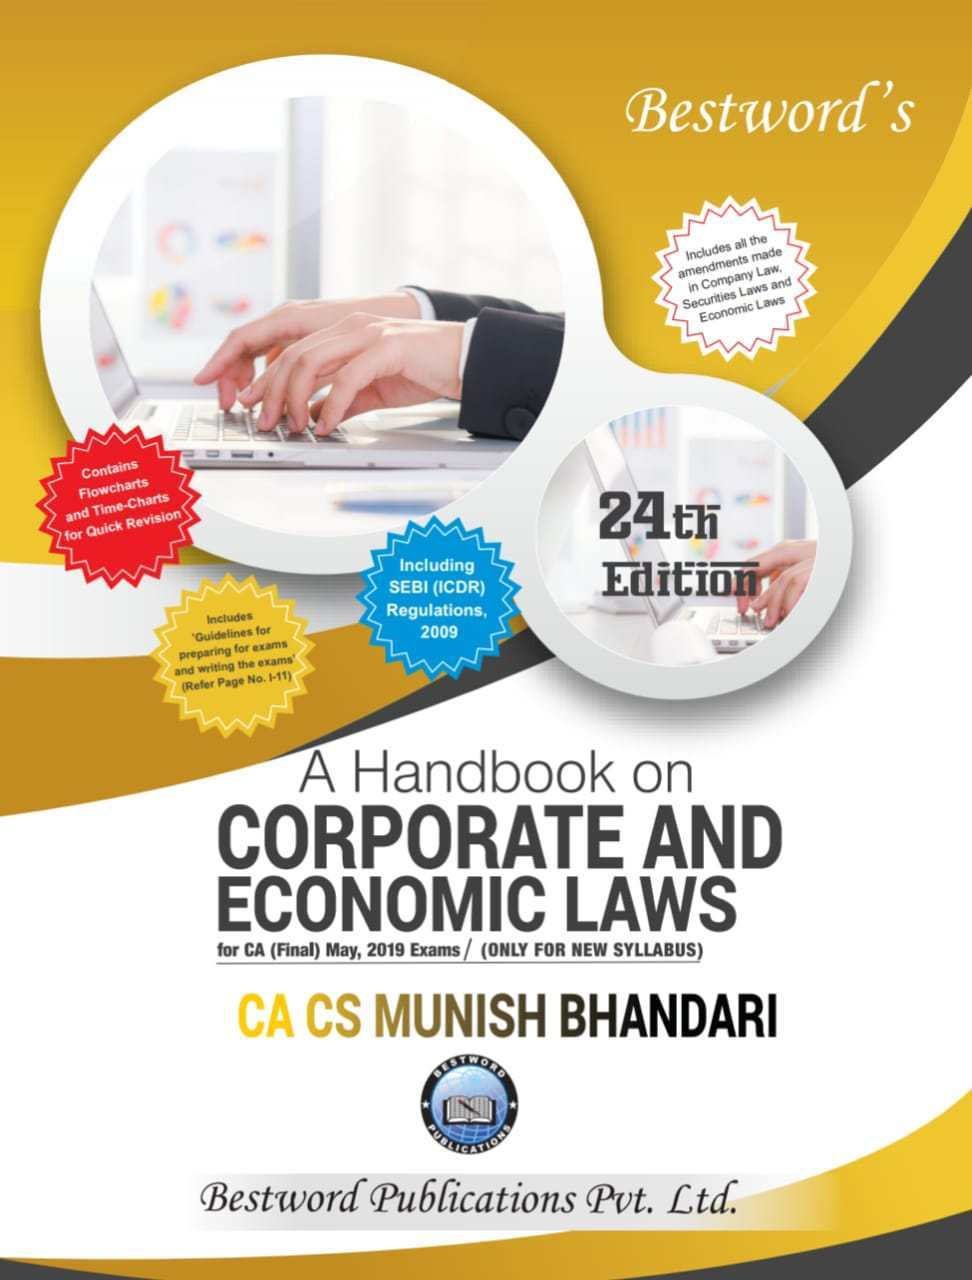 Bestword CA Final Handbook on Corporate and Economic Laws New Syllabus By Munish Bhandari Applicable for maY 2019 Exam